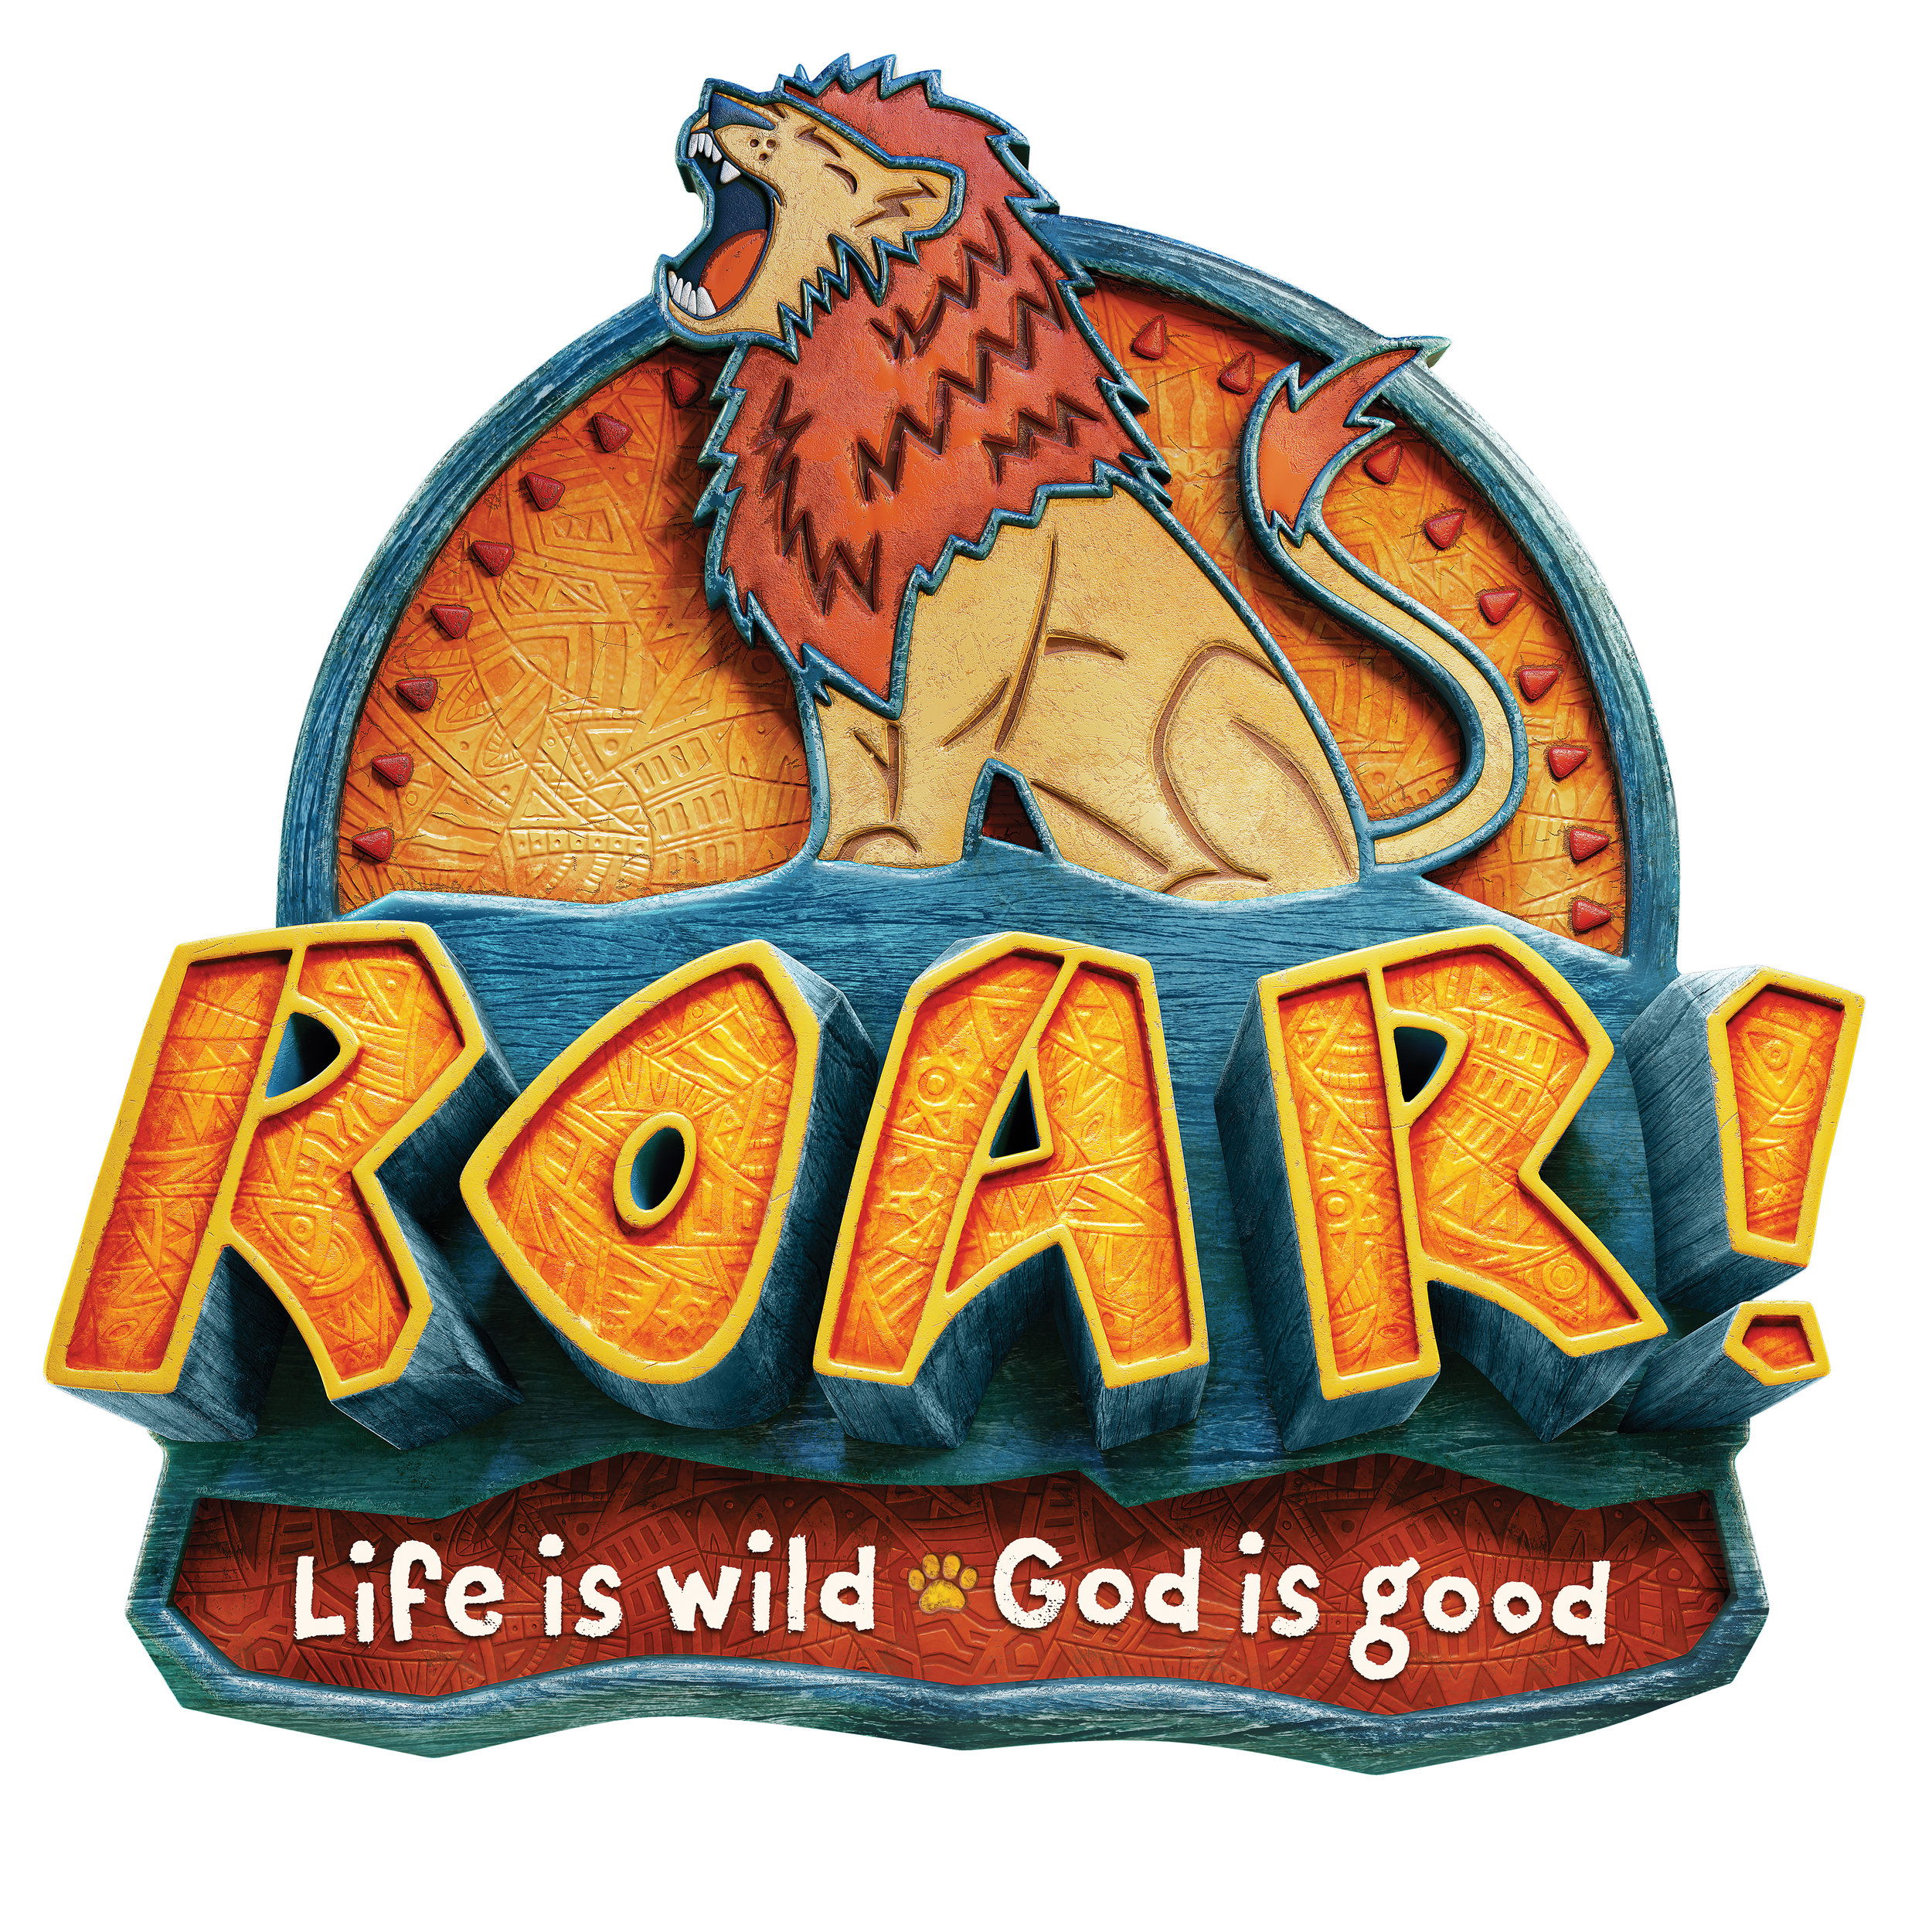 ROAR into VBSJuly 8-12 - ROAR into the fun at VBS this summer. This year kids will discover that even though life gets wild, God is good. Roar is filled with incredible Bible-learning experiences kids see, hear, touch, and even taste! Crafts with meaning, team-building games, cool Bible songs, and tasty treats are just a few of the standout activities that help faith flow into real life. So plan on joining us and register today by completing the form below. FREE t-shirt if registered by June 21st!For more information contact Nichole Bennett at nichole@grantcommunitychurch.org